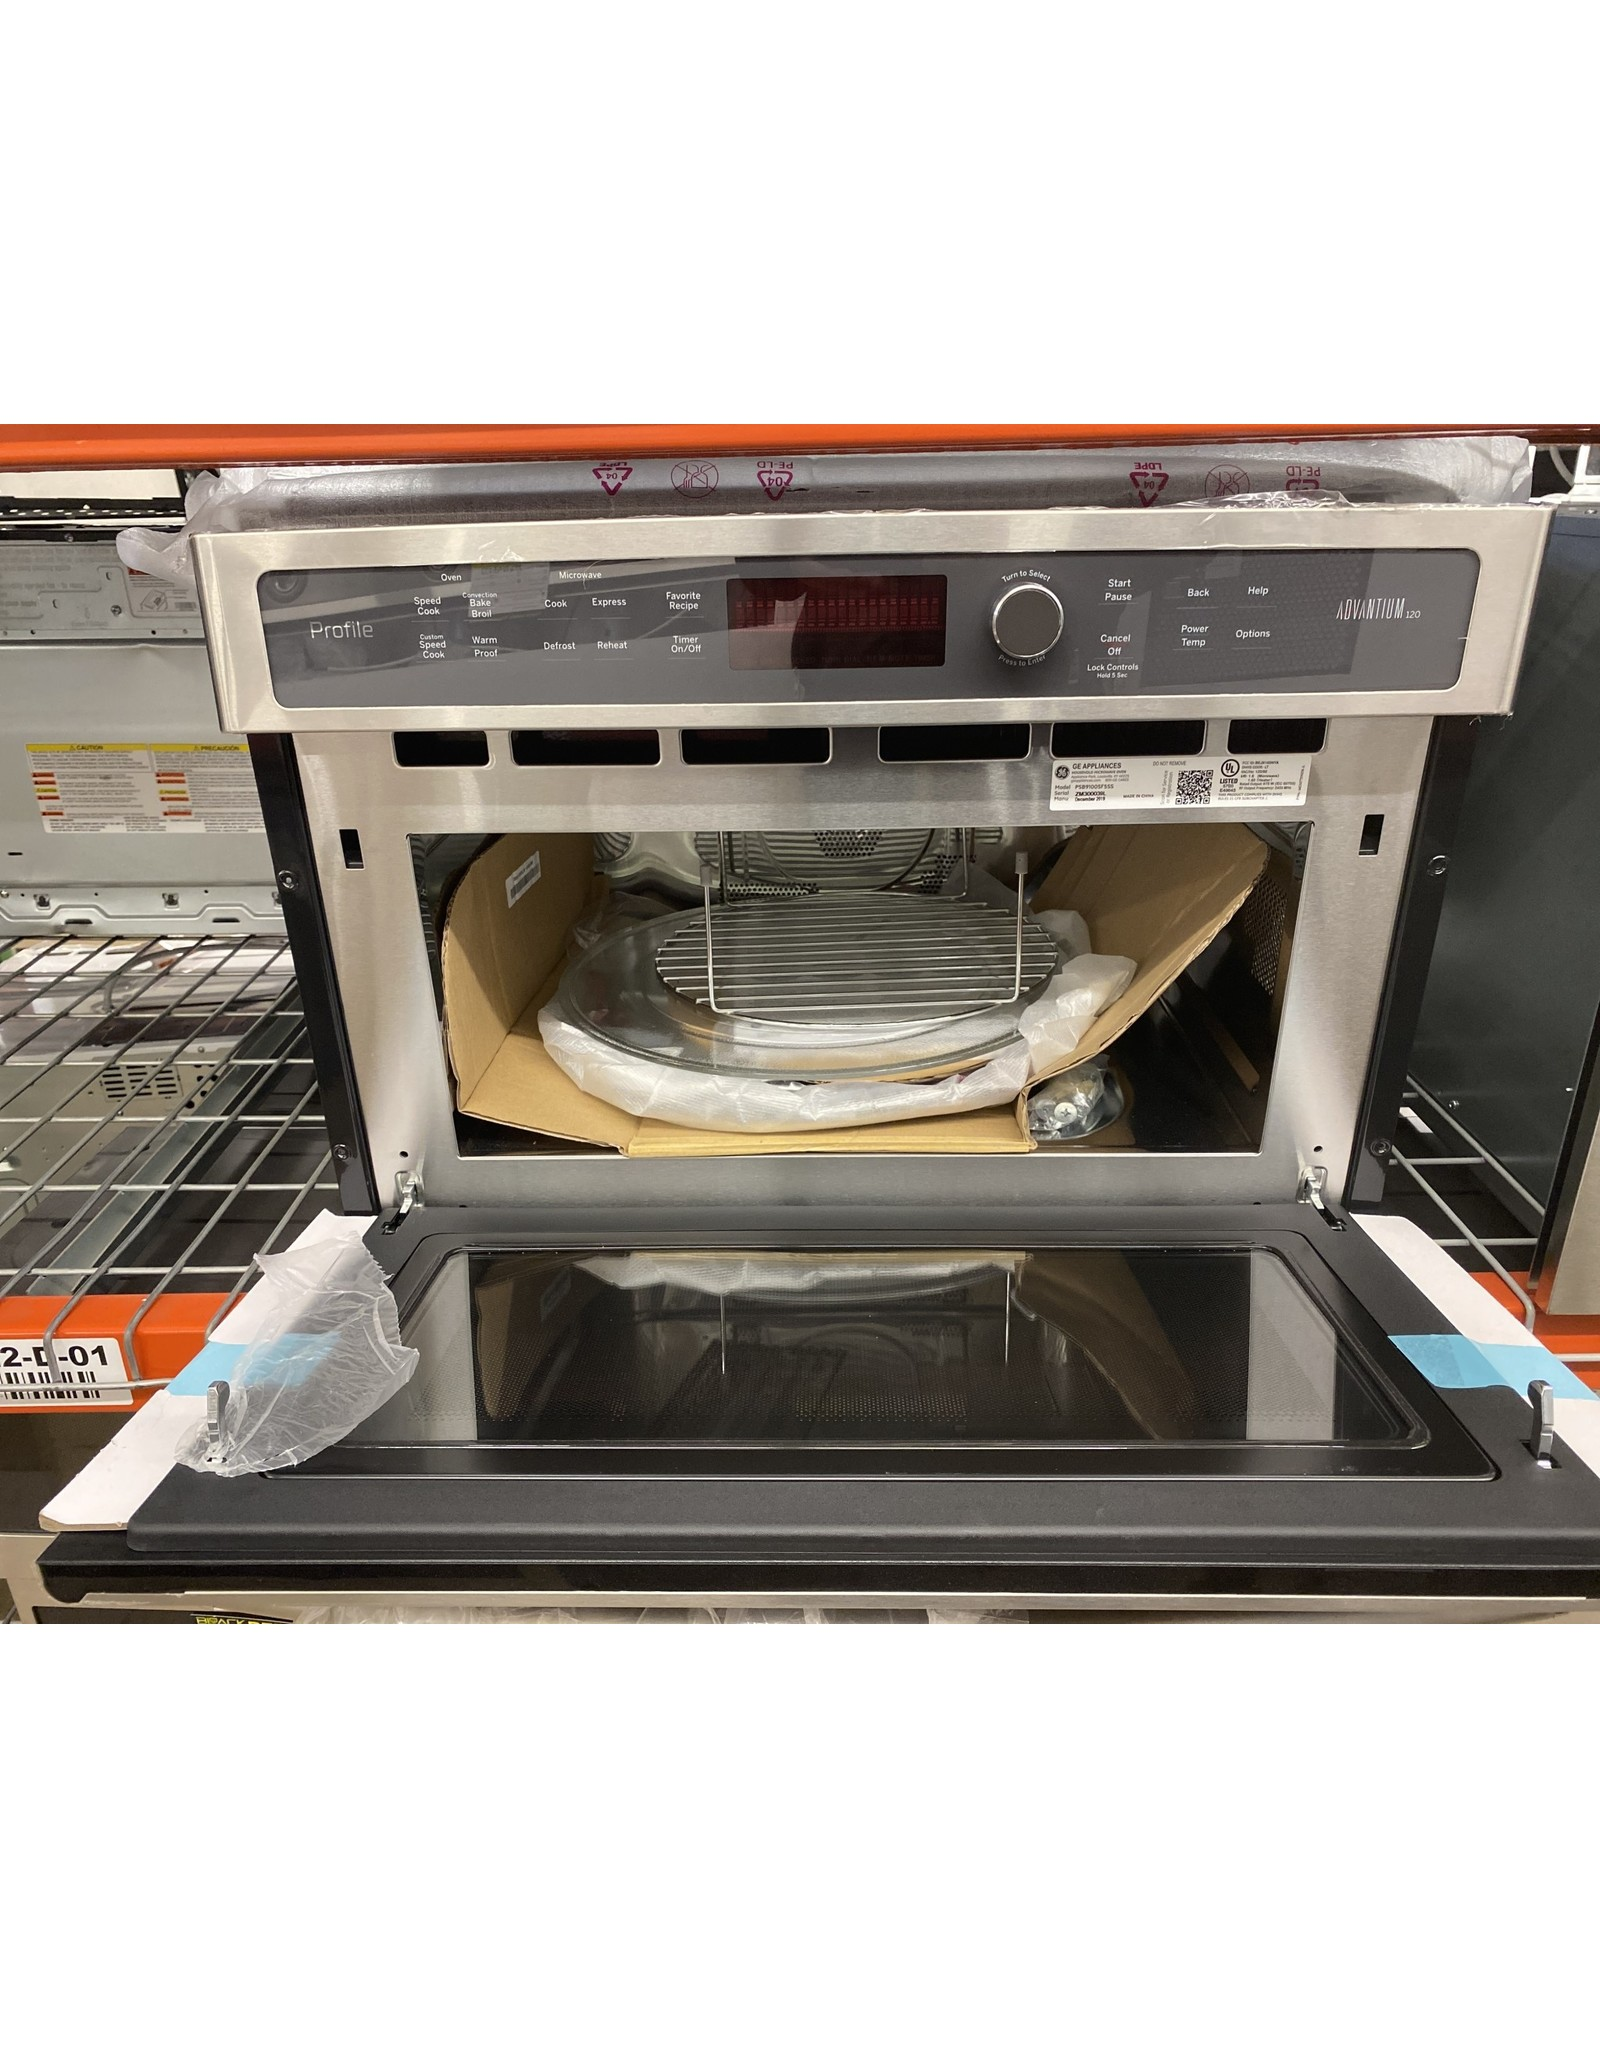 GE PSB9100SFSS Profile 27 in. Single Electric Wall Oven with Advantium Cooking in Stainless Steel